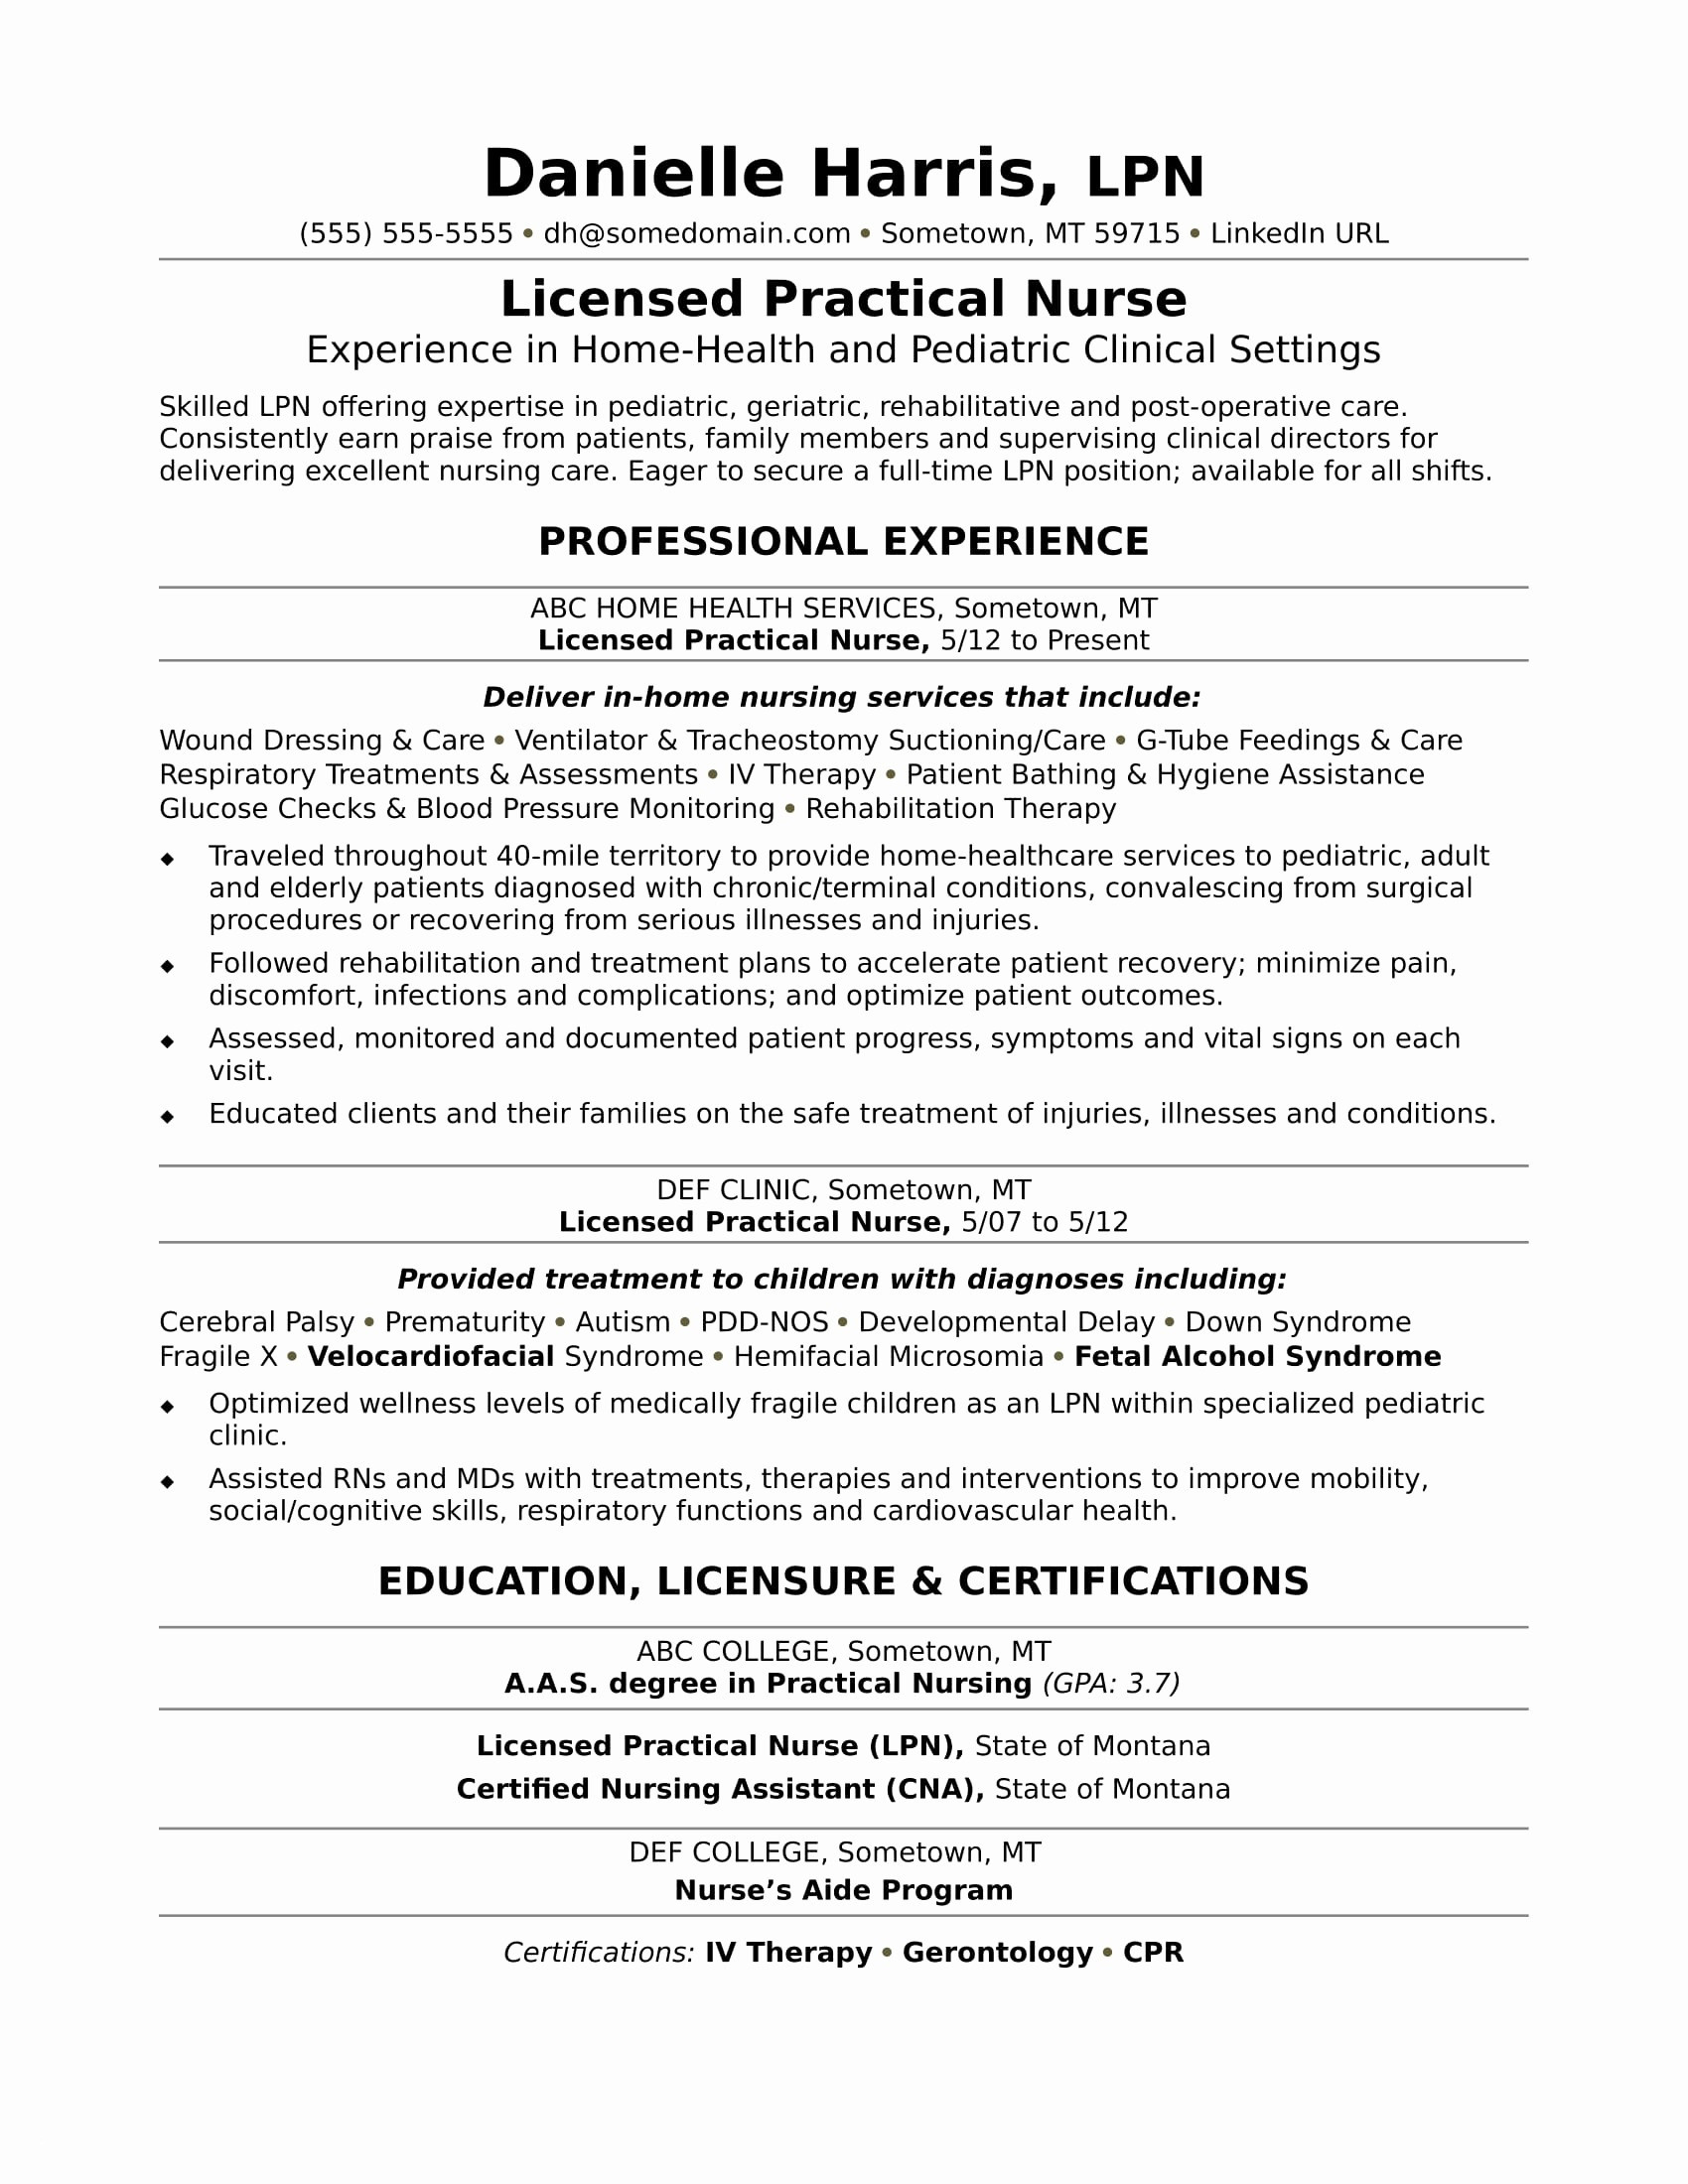 Respiratory therapist Resume Sample - Respiratory therapist Job Description Resume New Nursing Resume